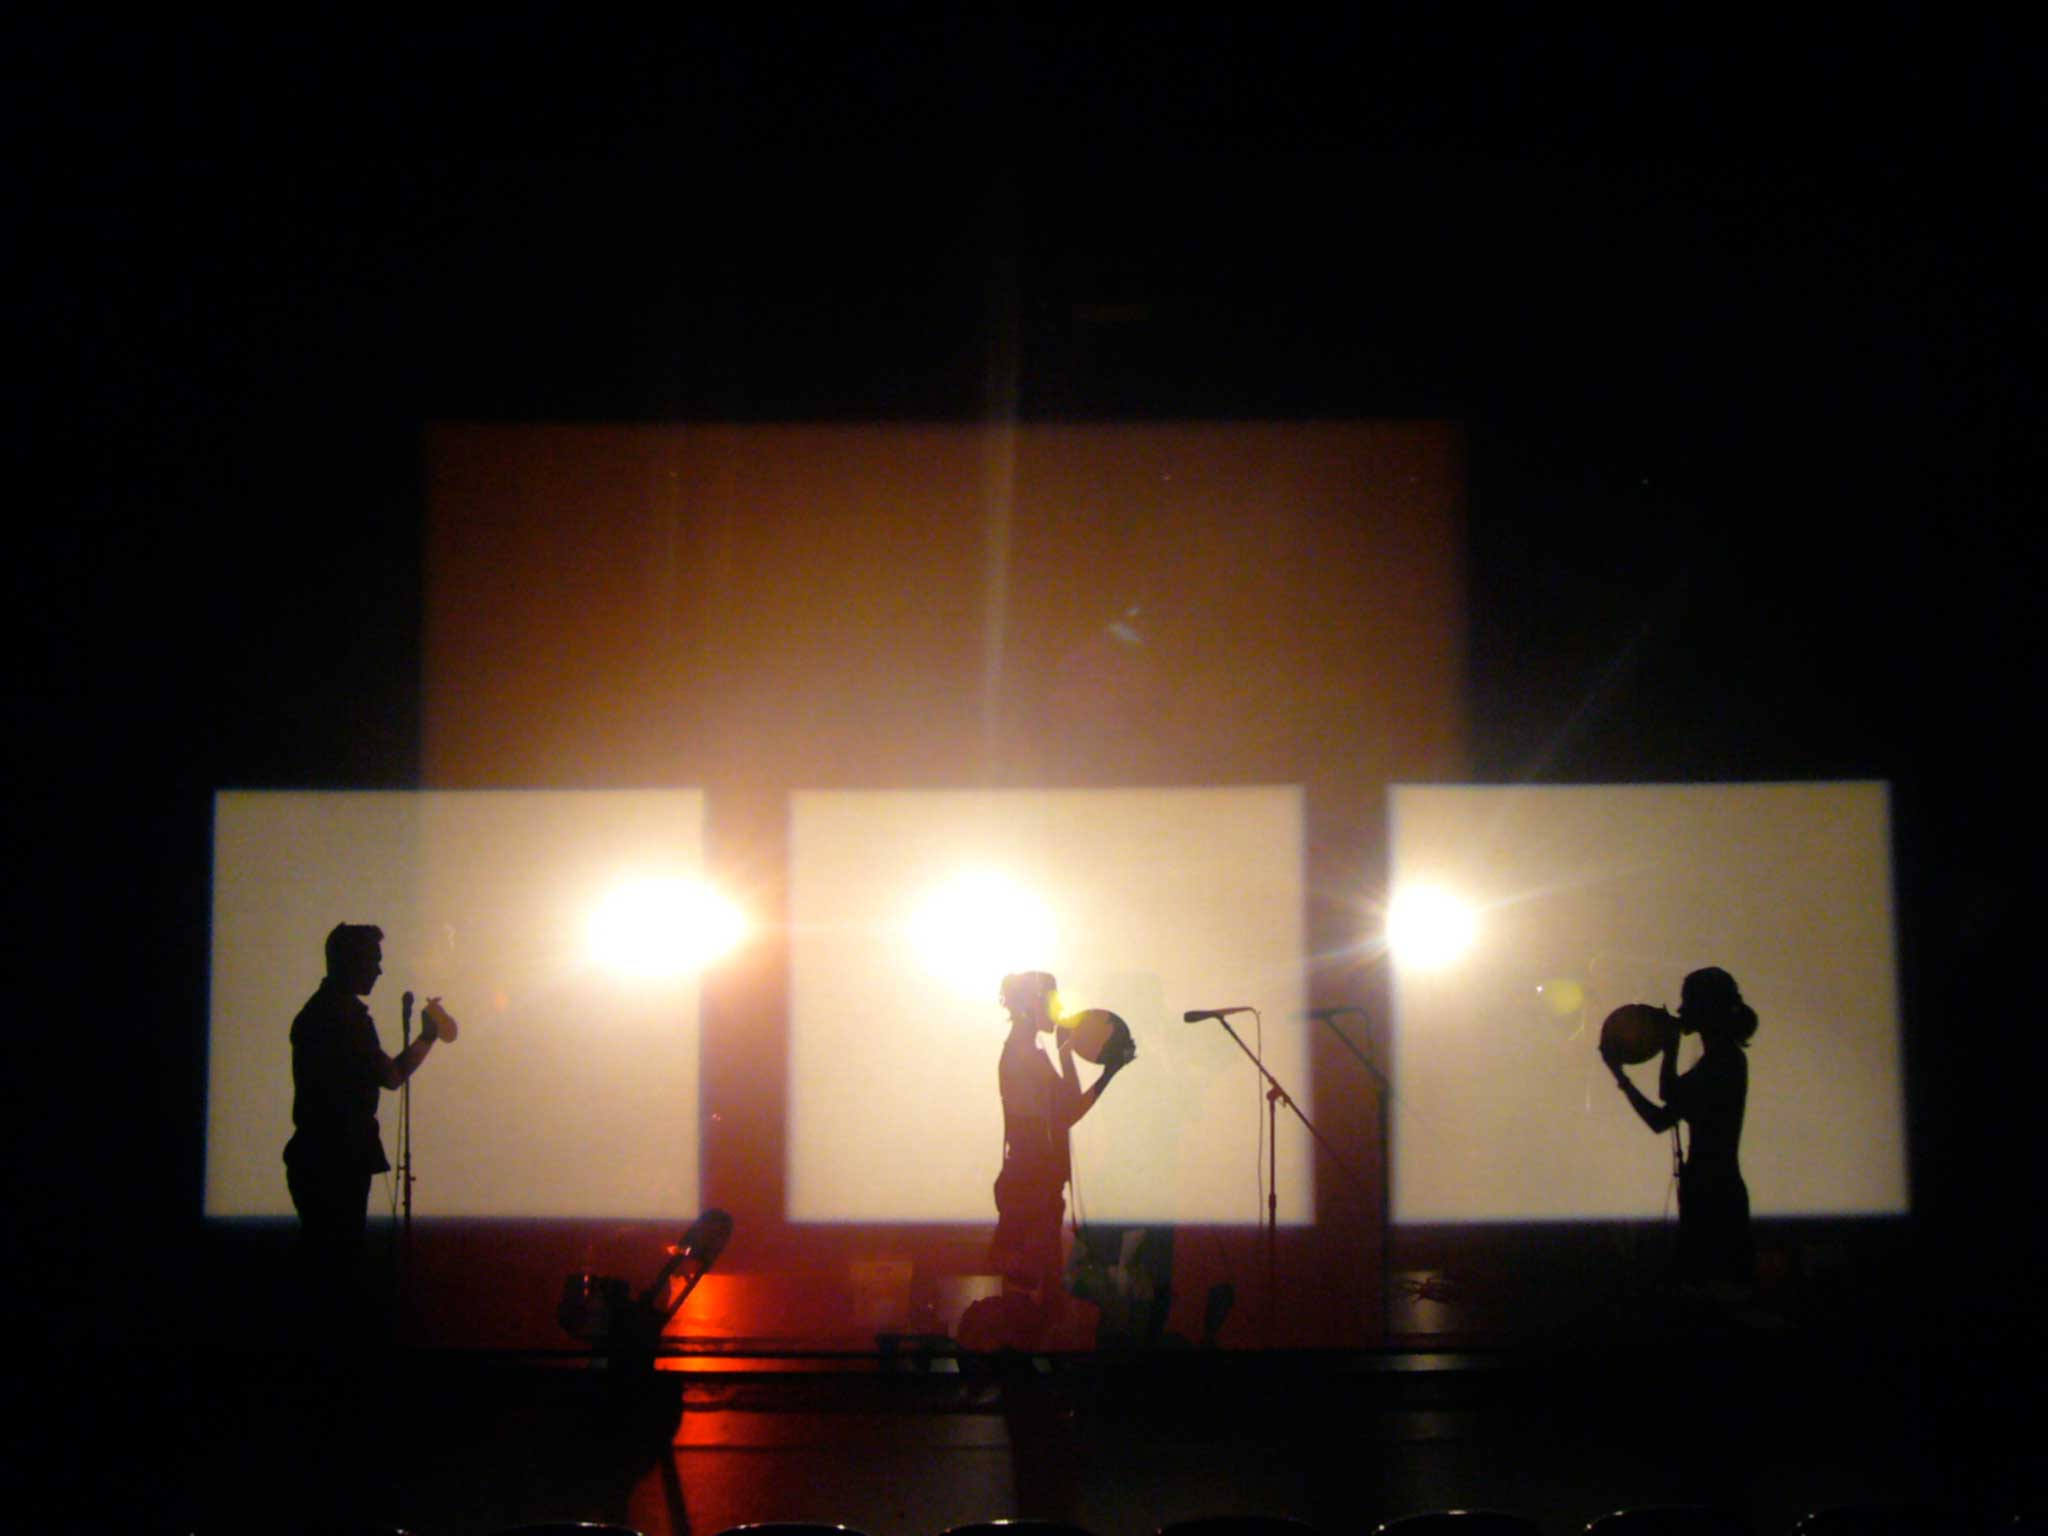 Three performers blowing up balloons,, silhouetted in separate rectangles of stage light (Whisper).